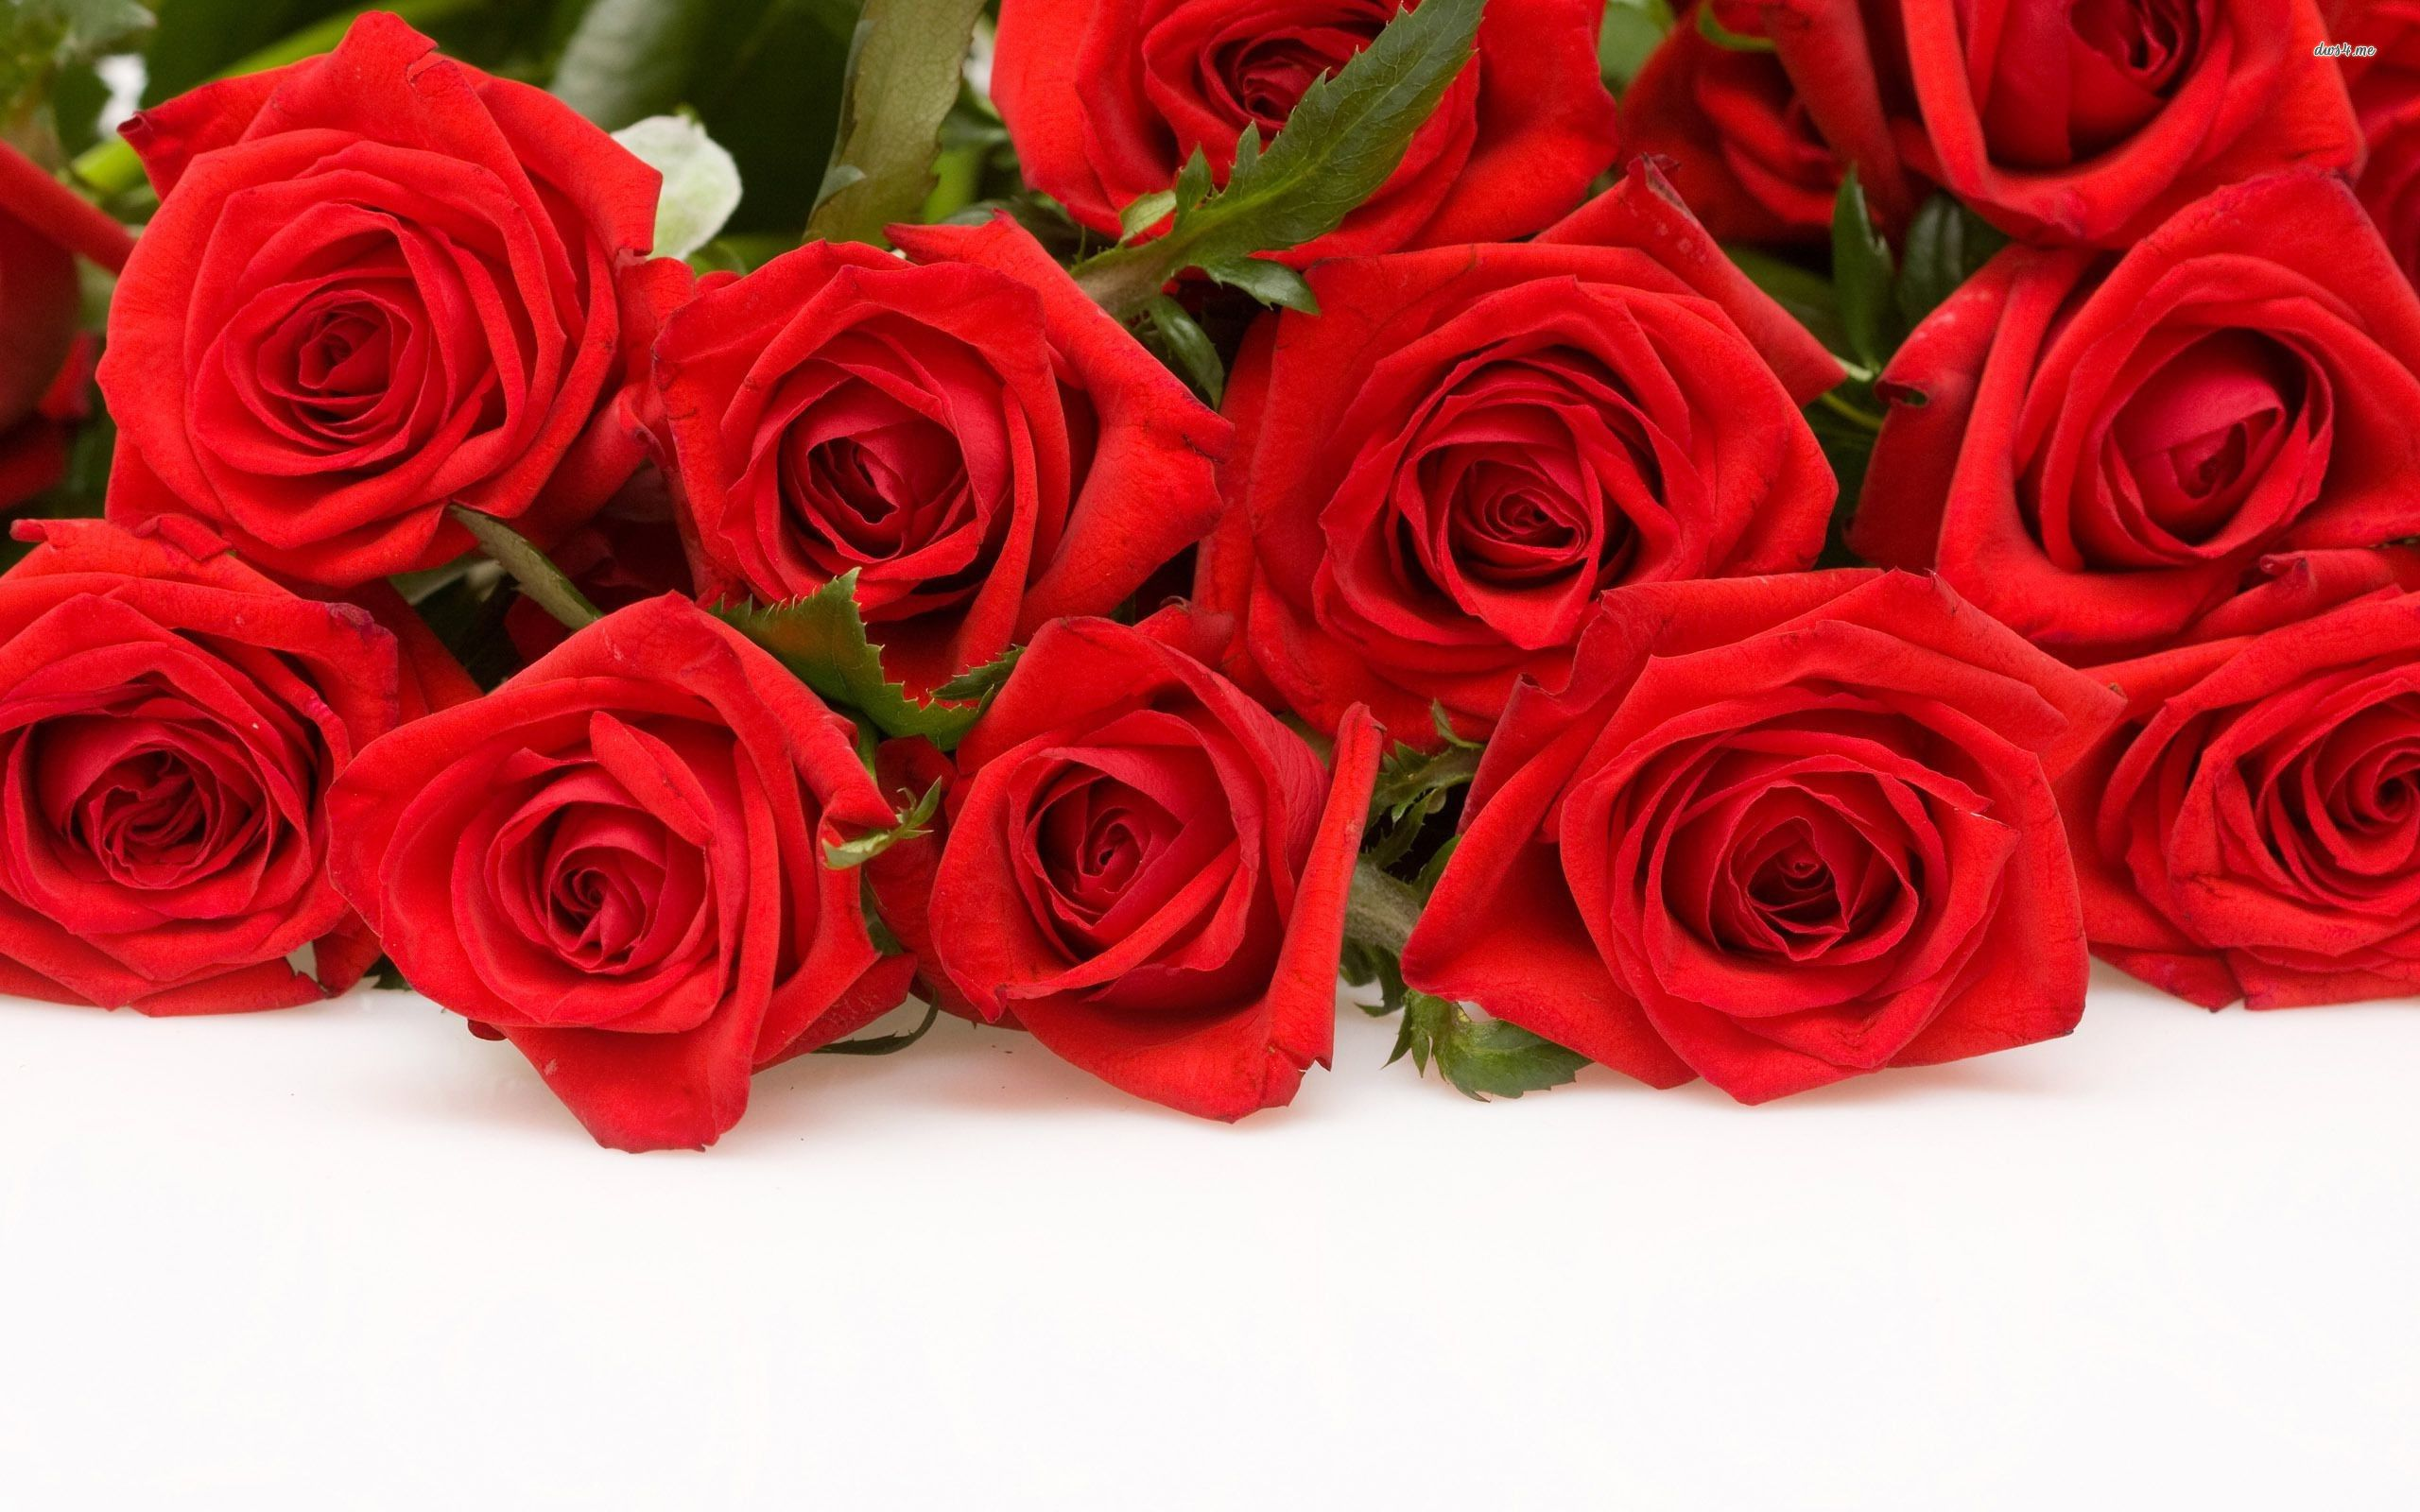 red rose flowers rose wallpapers wallpaper pictures of rose